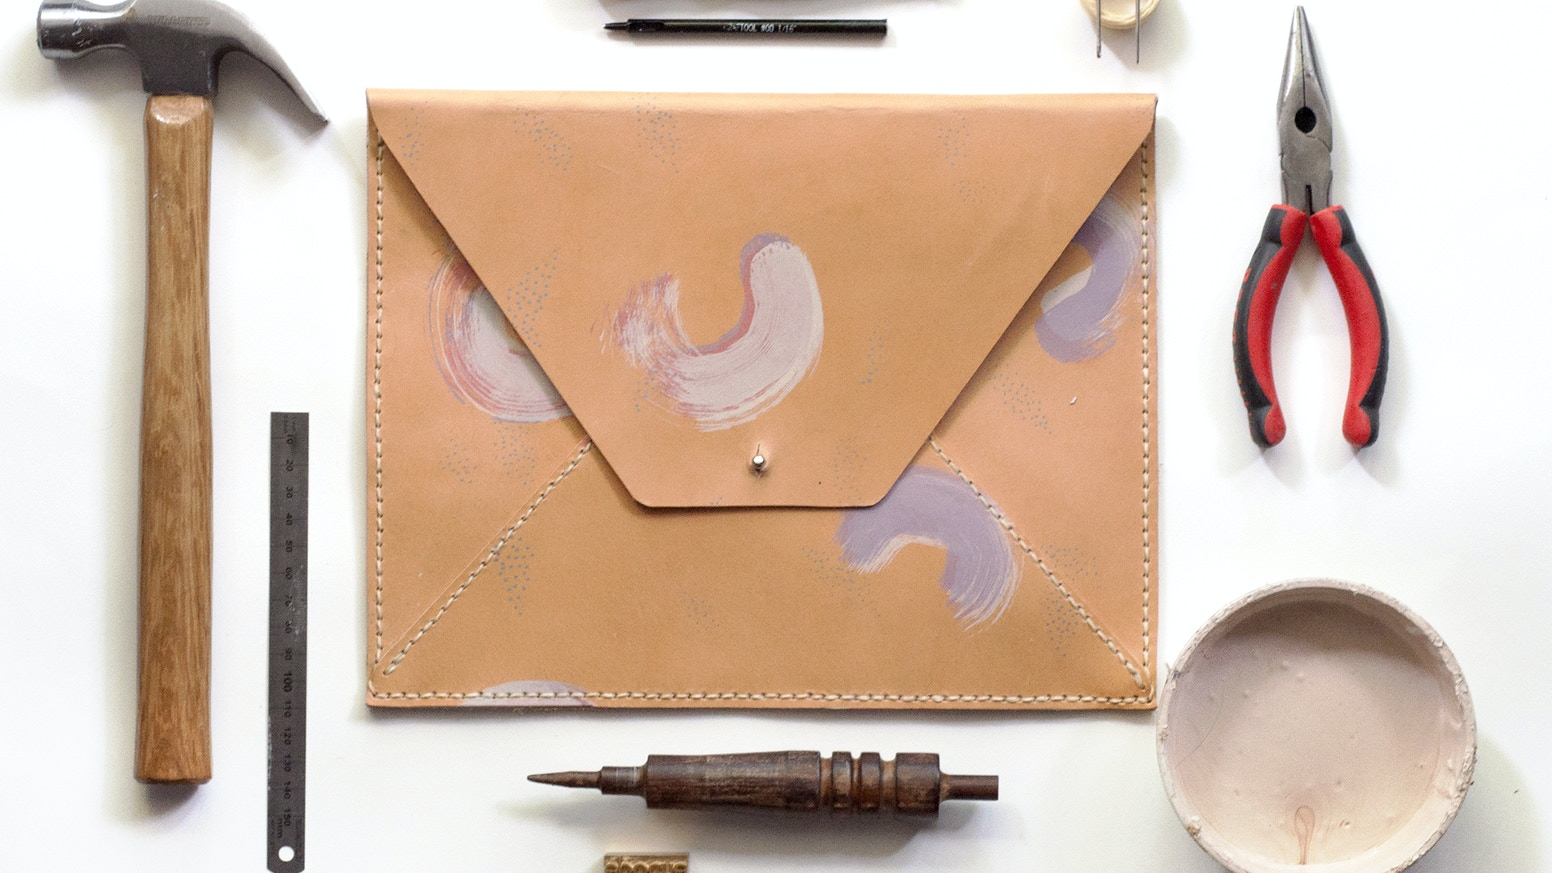 Epoché is a line of vegetable tanned leather goods that fuse fine art with fashion resulting in modern and sophisticated designed bags.